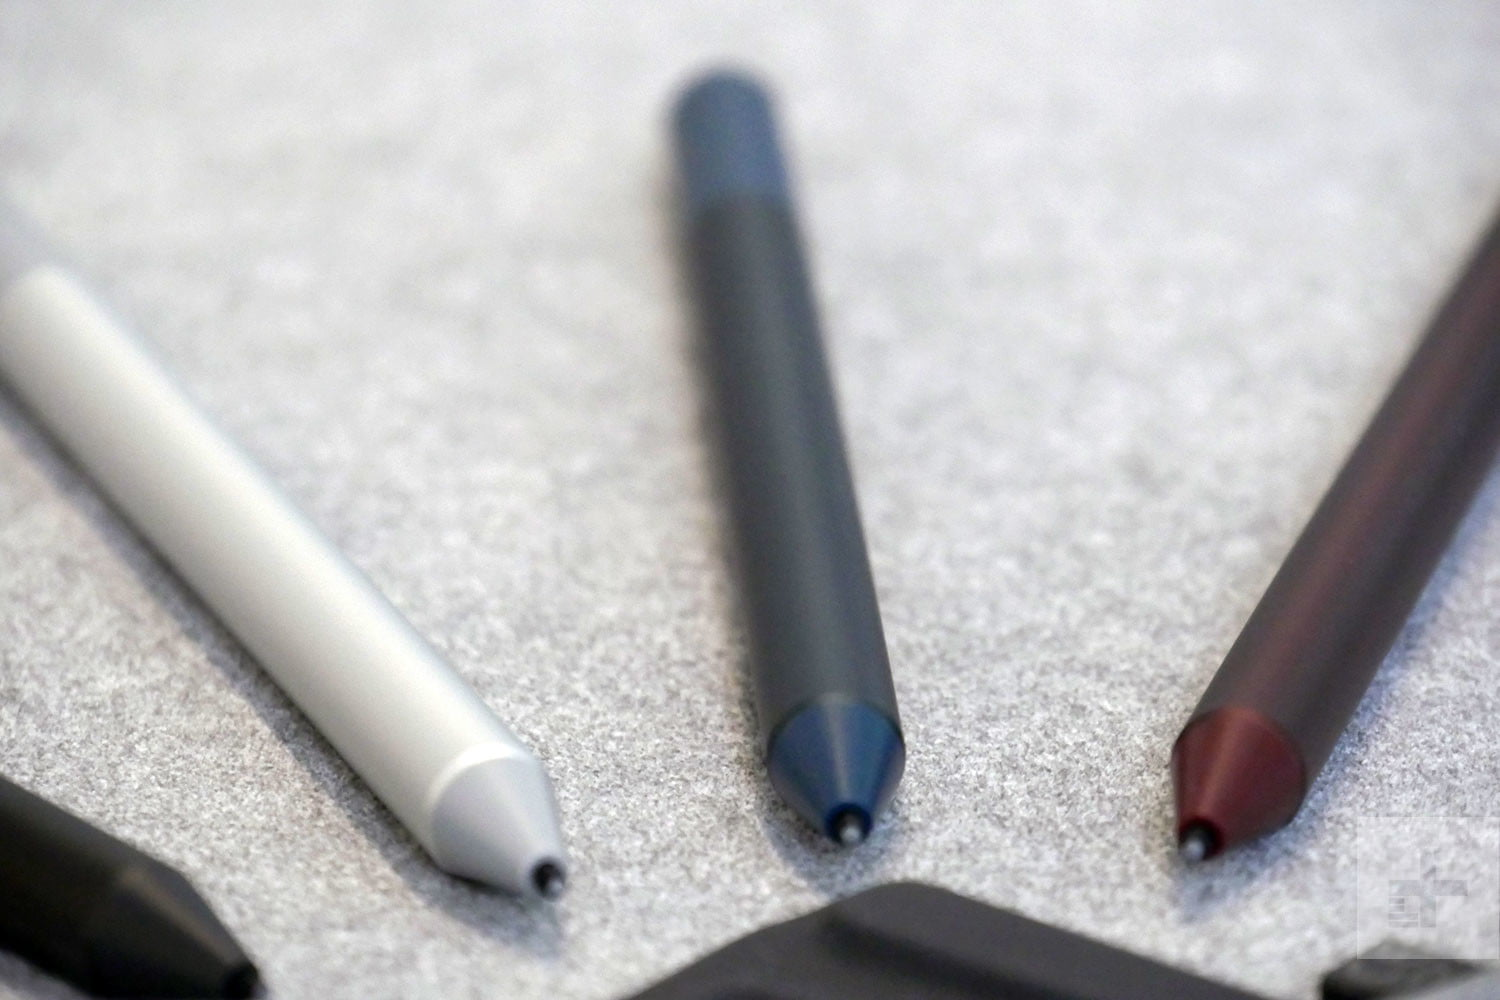 surface pen a ricarica luce del display